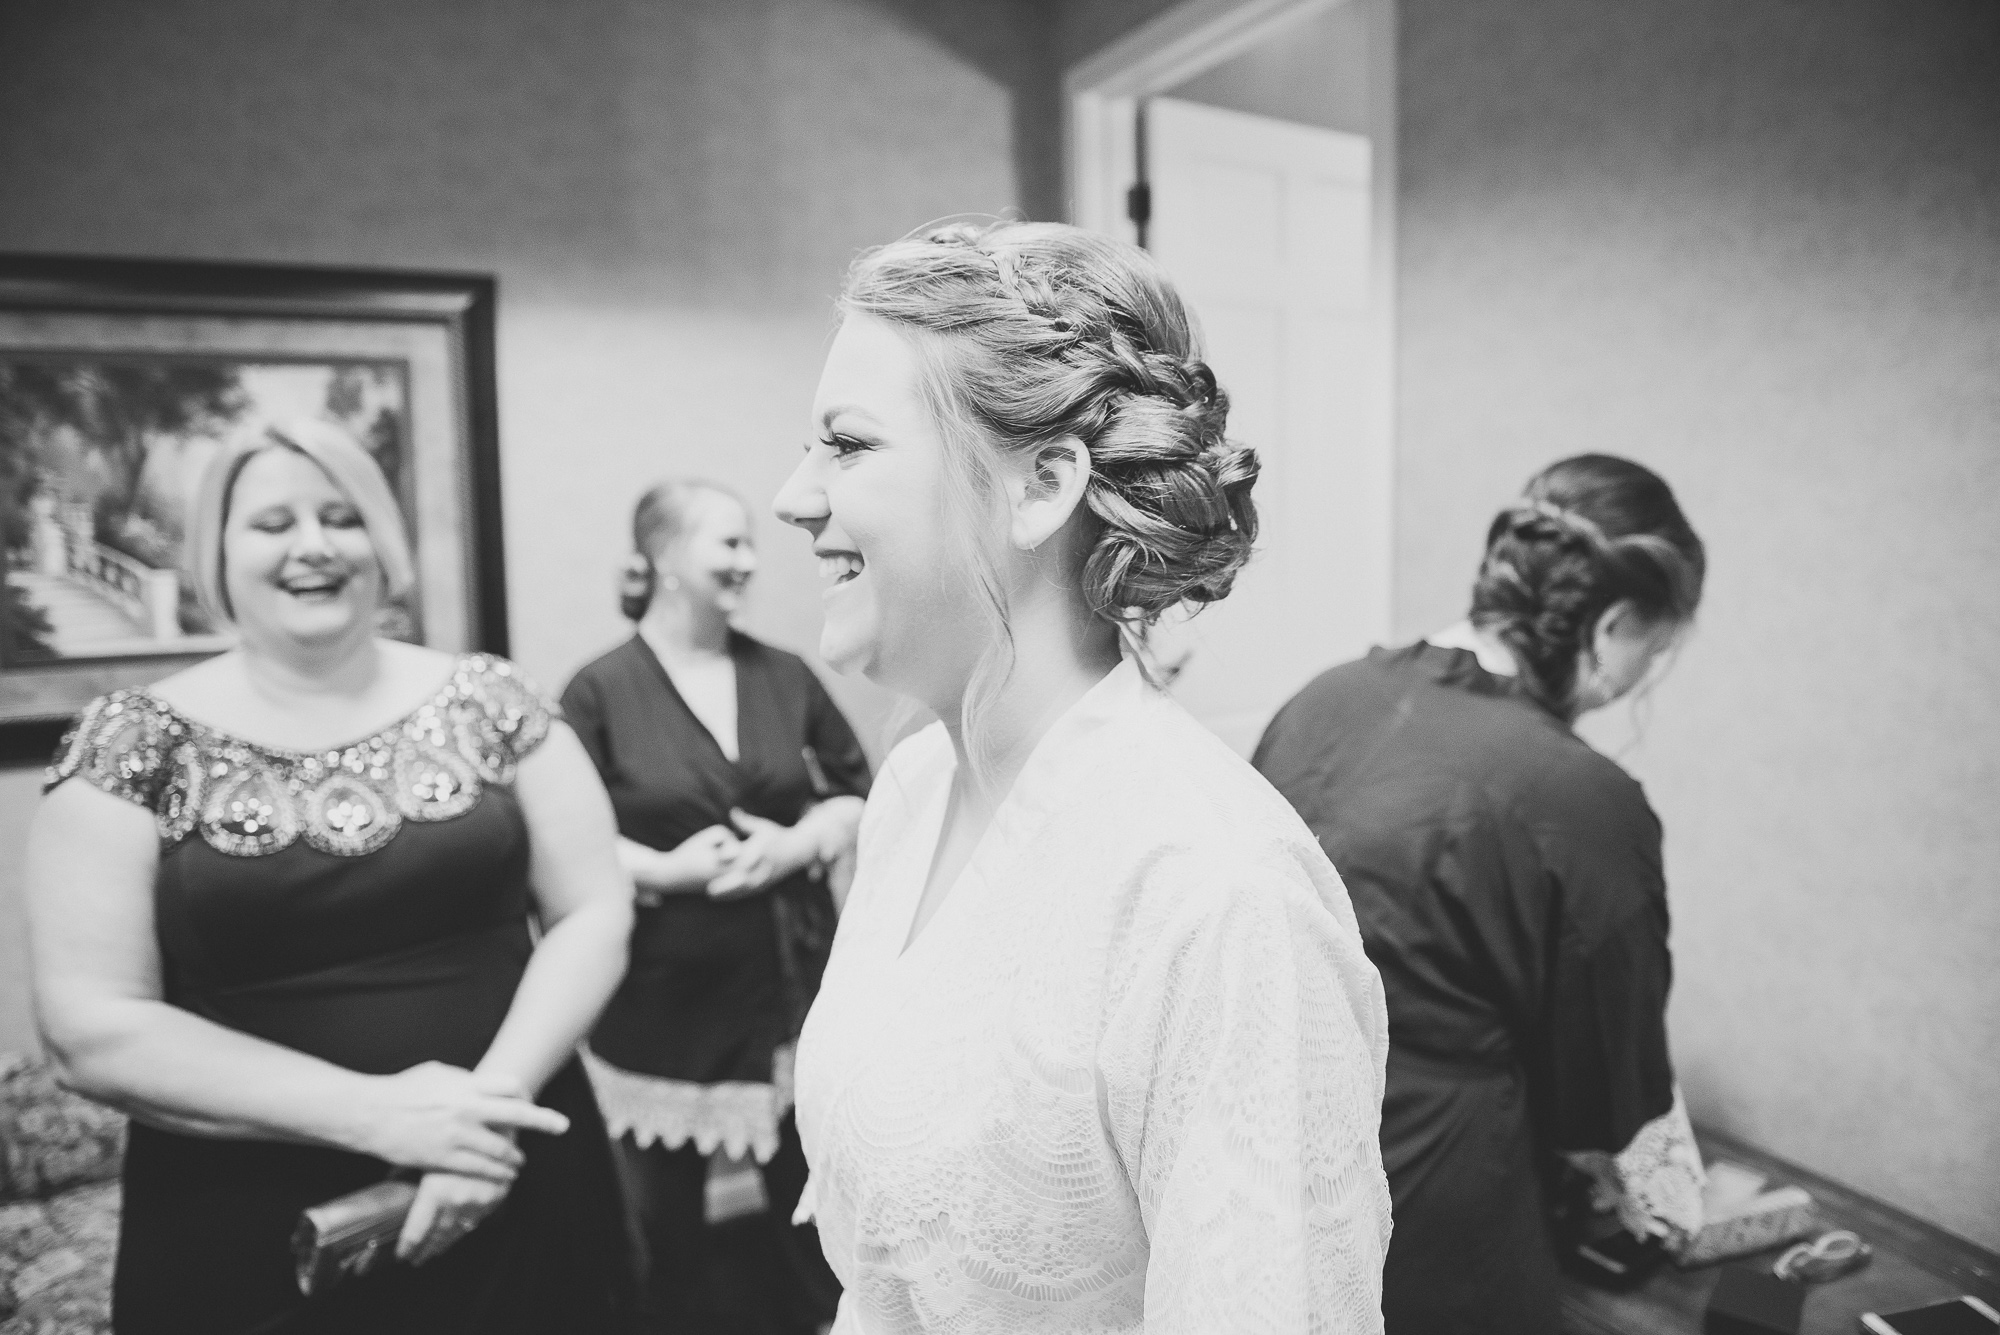 Stephen & Amanda's Wedding (48 of 228).jpg